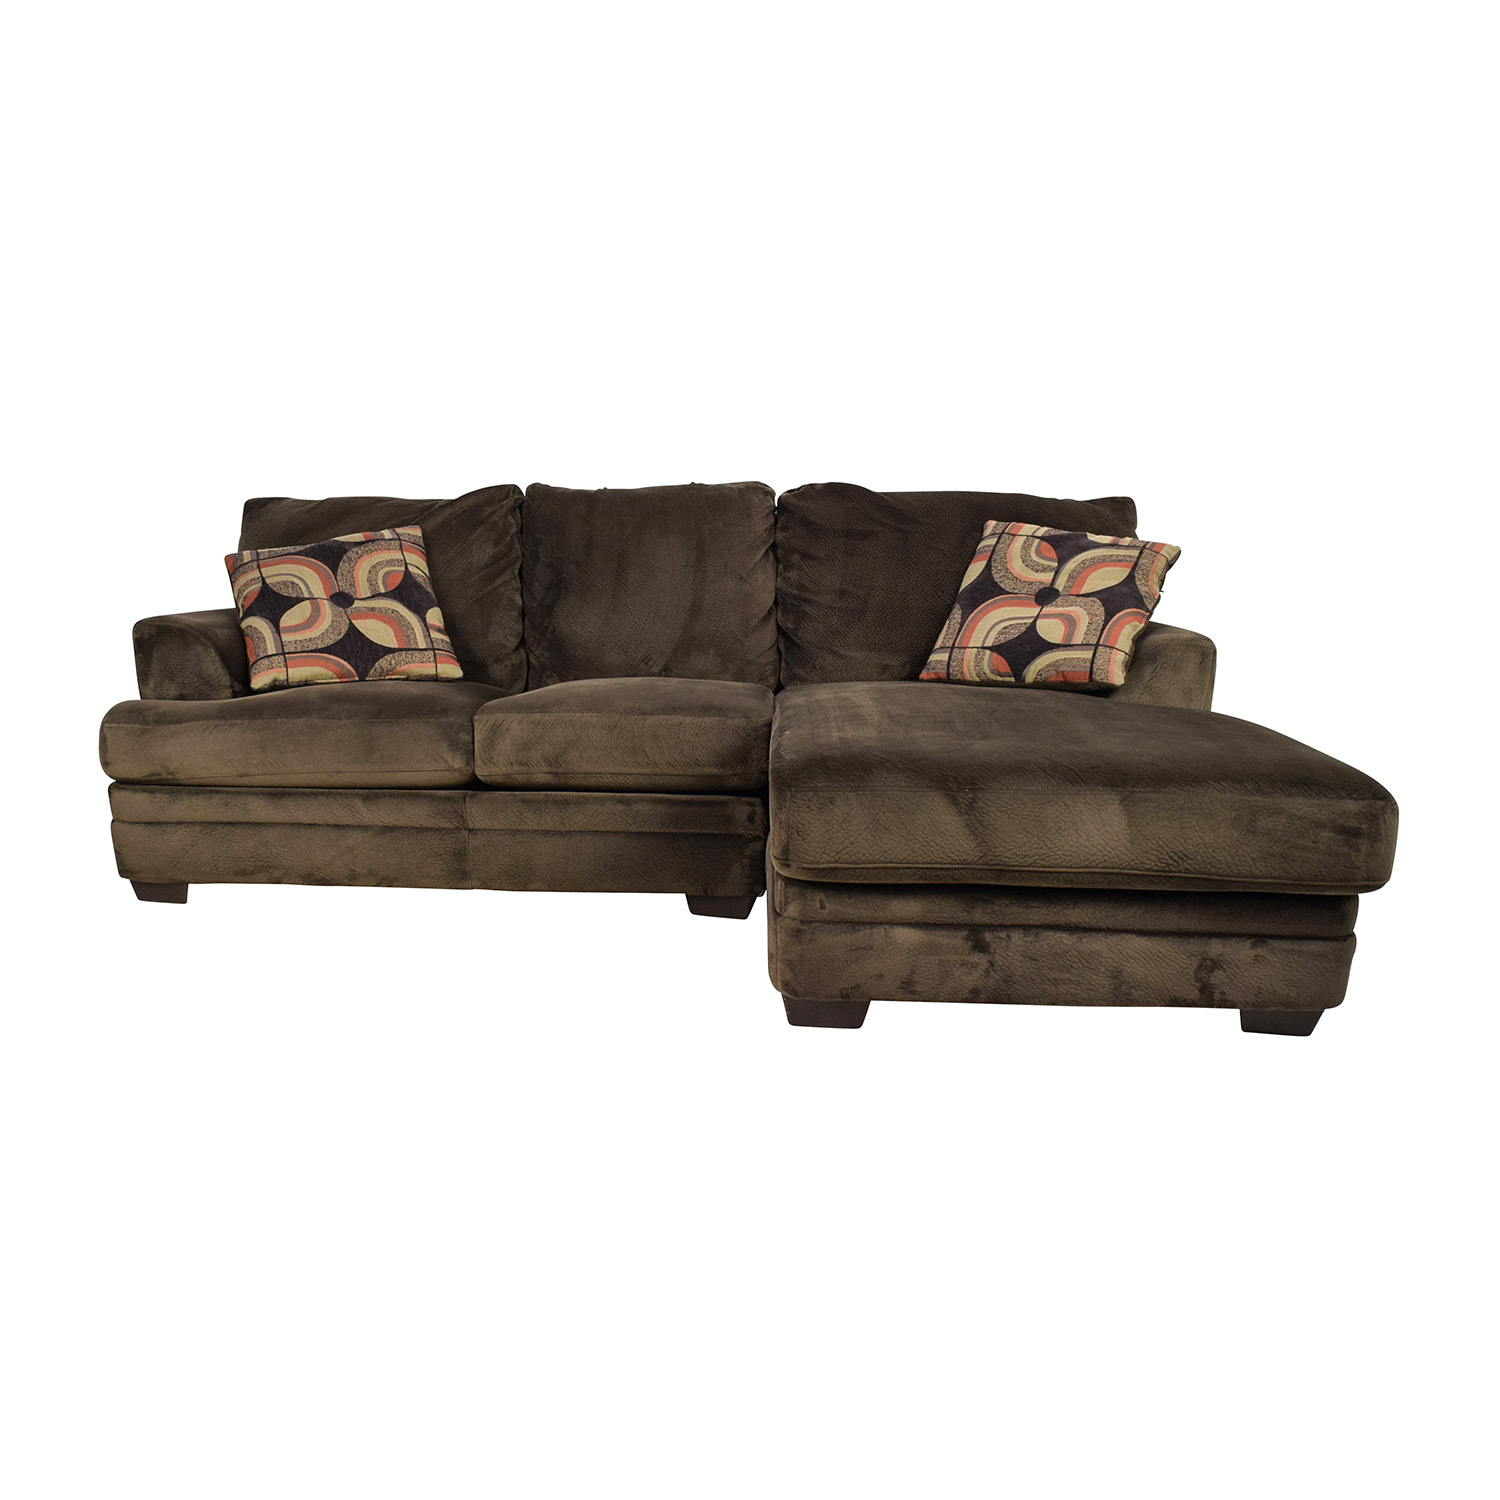 Bobs Furniture Charisma Sectional Sofa sale